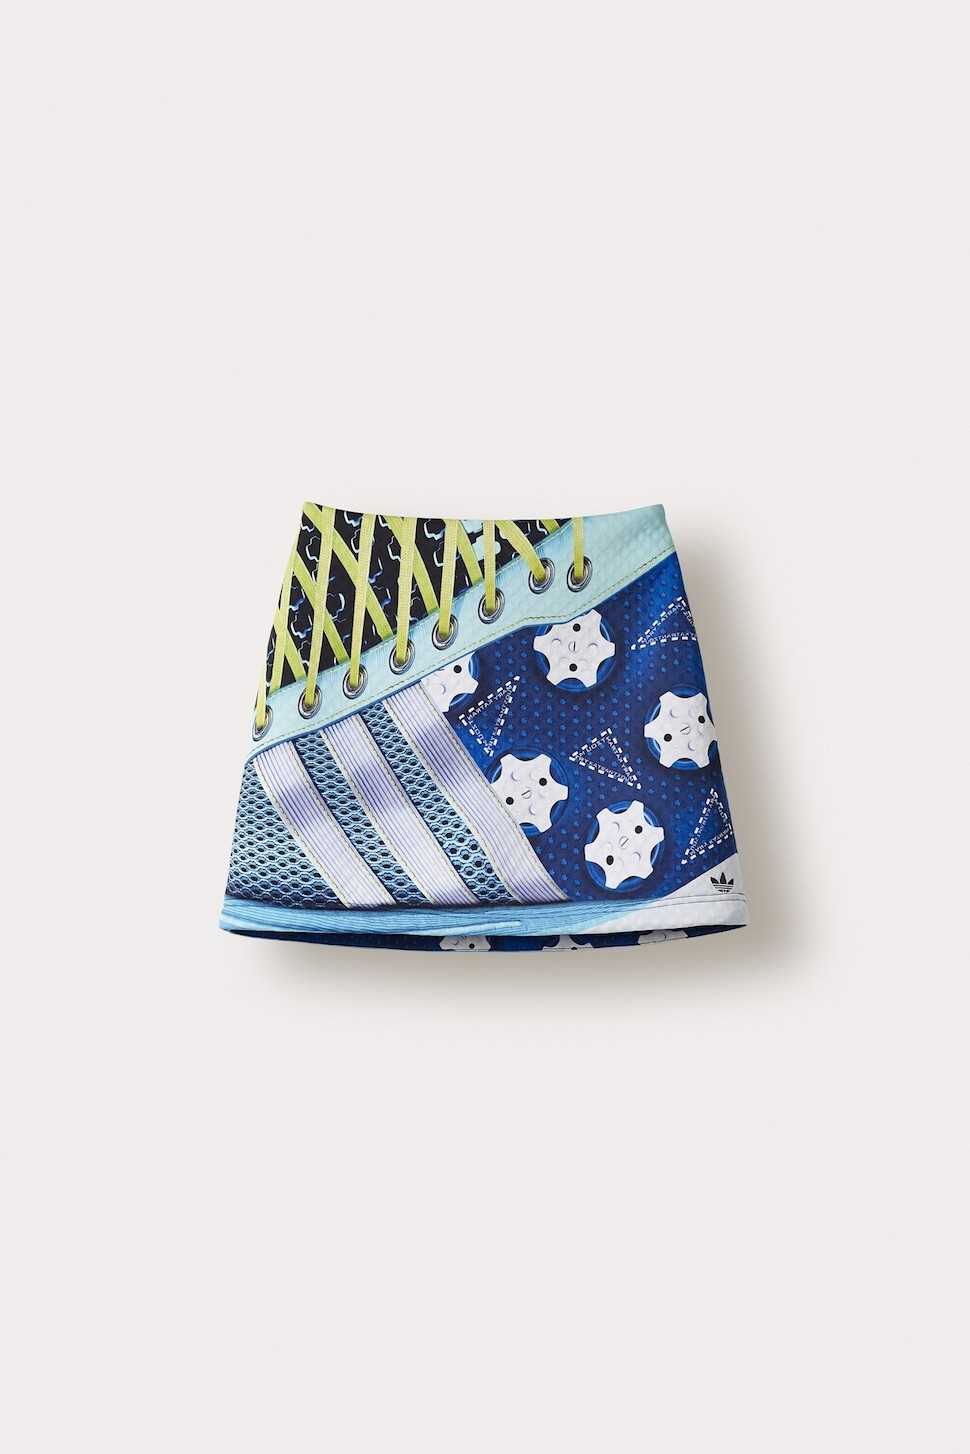 adidas Originals by Mary Katrantzou A字型短裙 NTD 7000